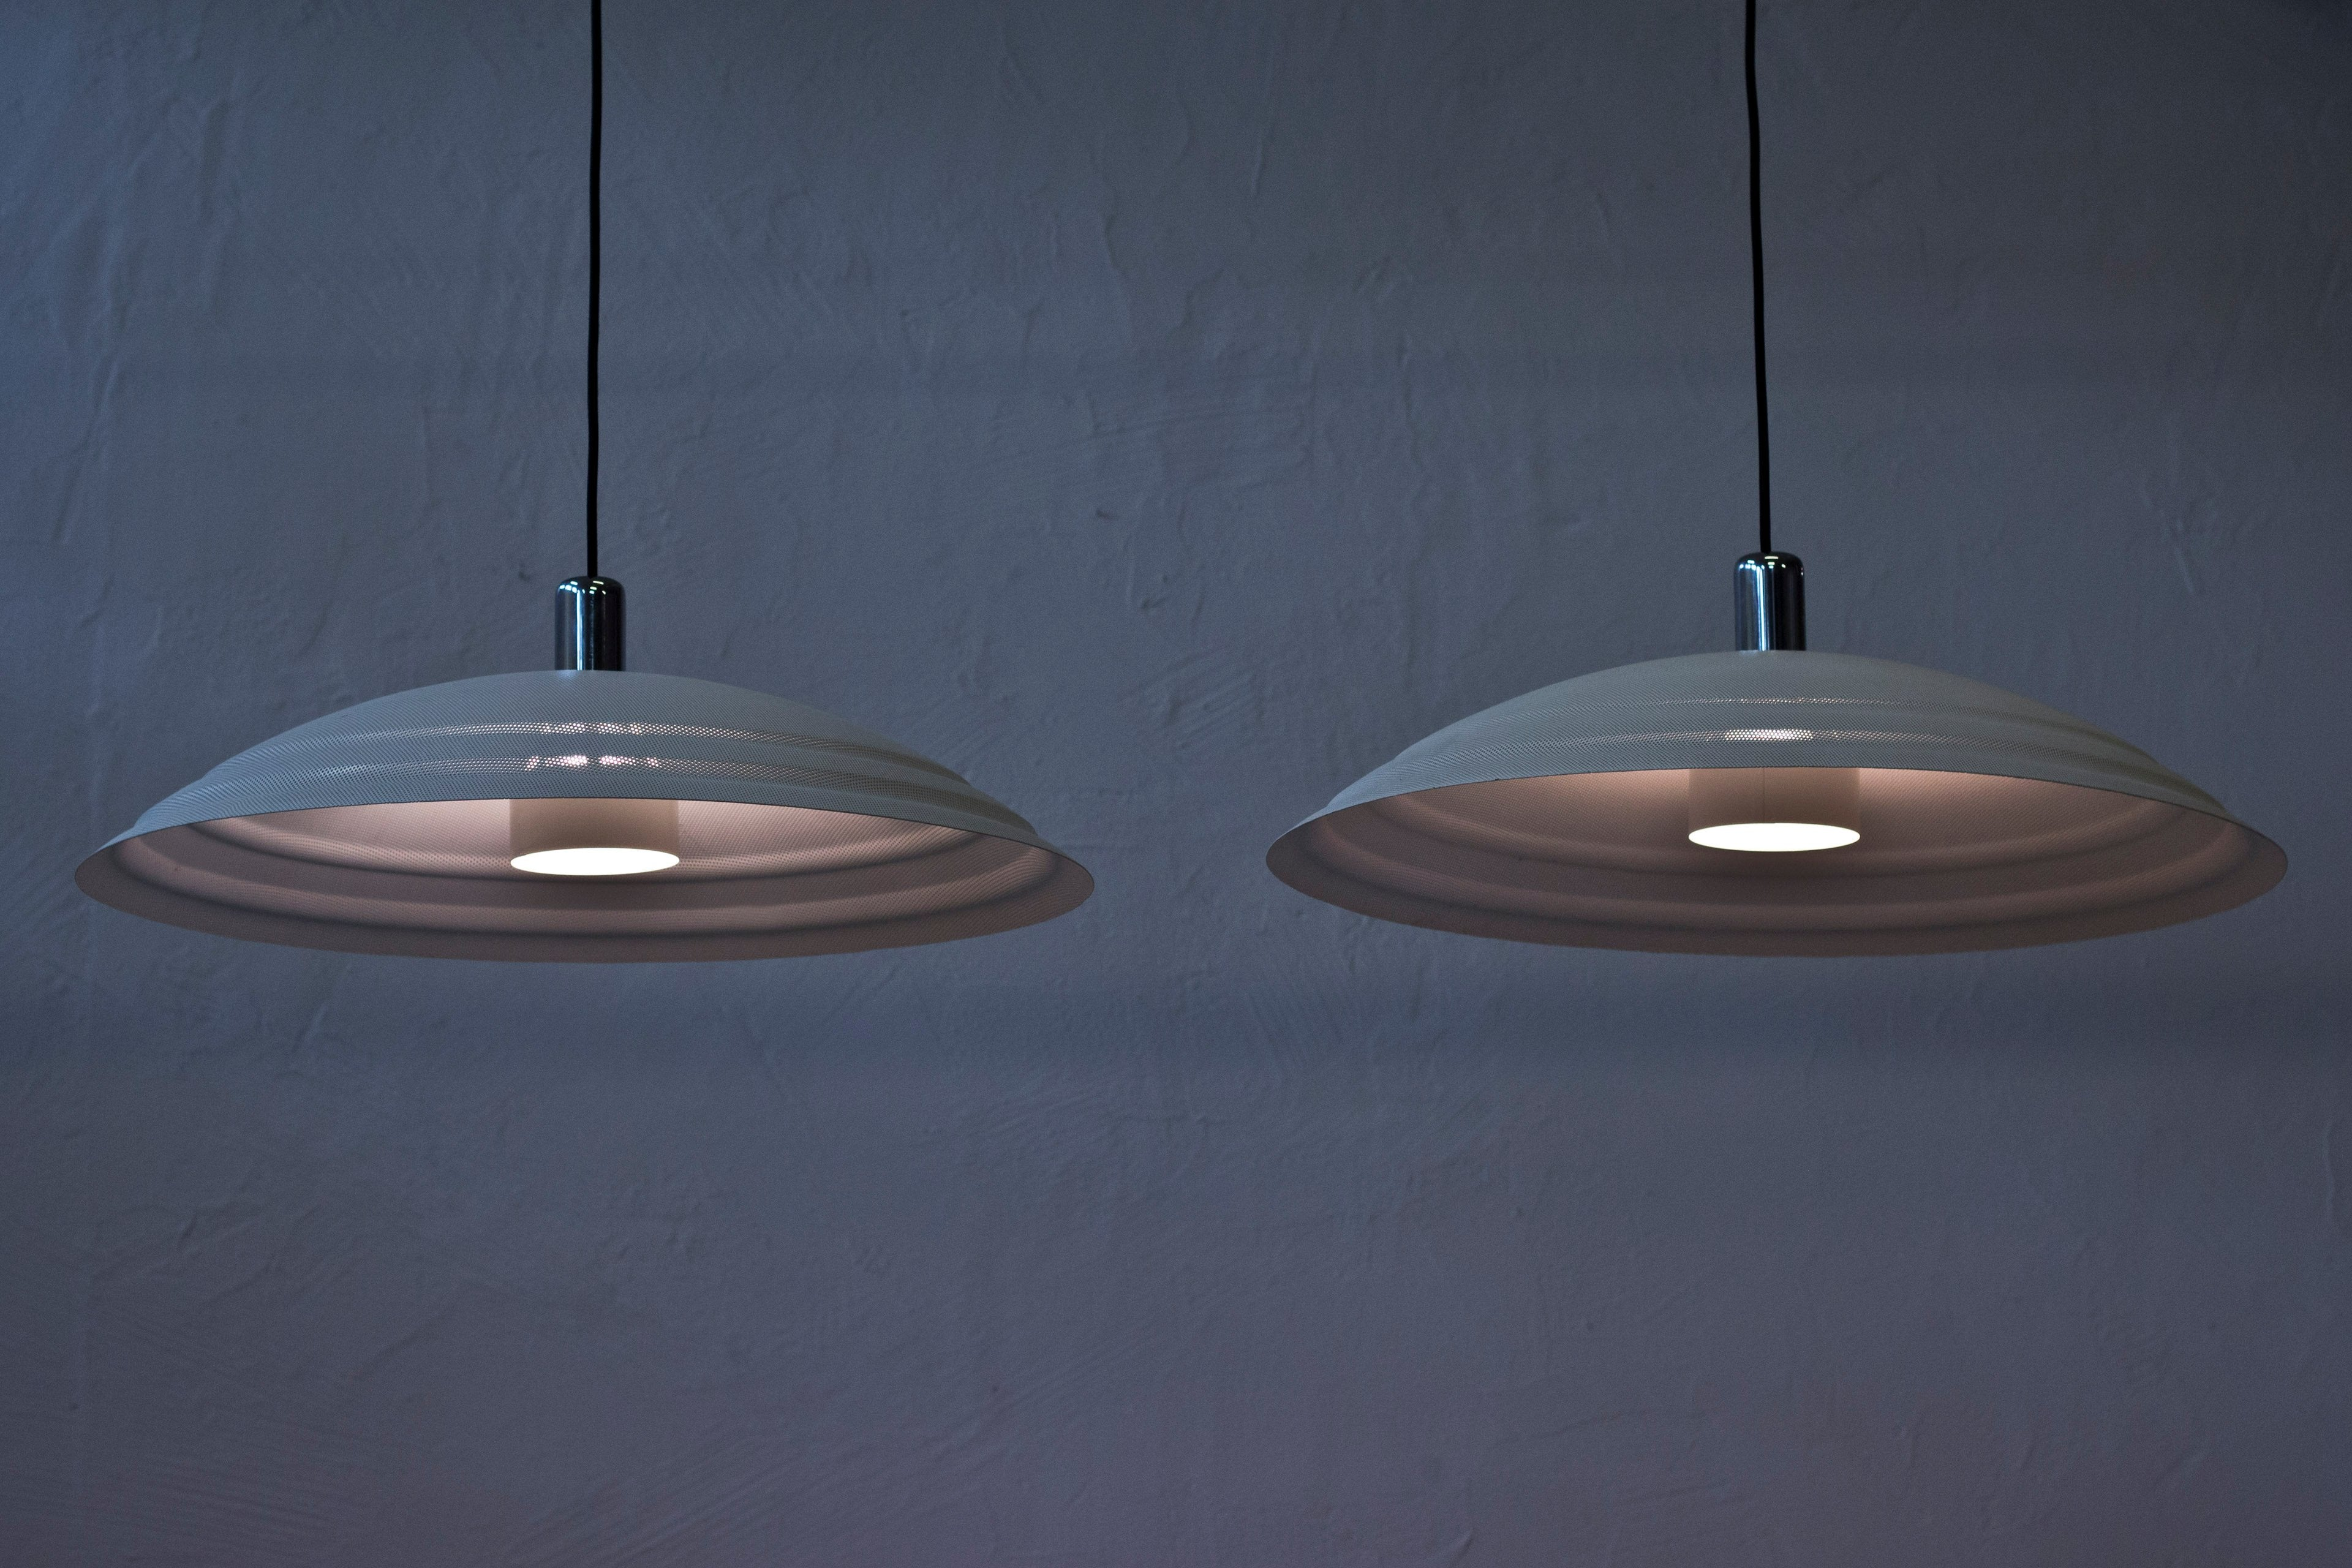 Ceiling lamps by Lindau & Lindekrantz